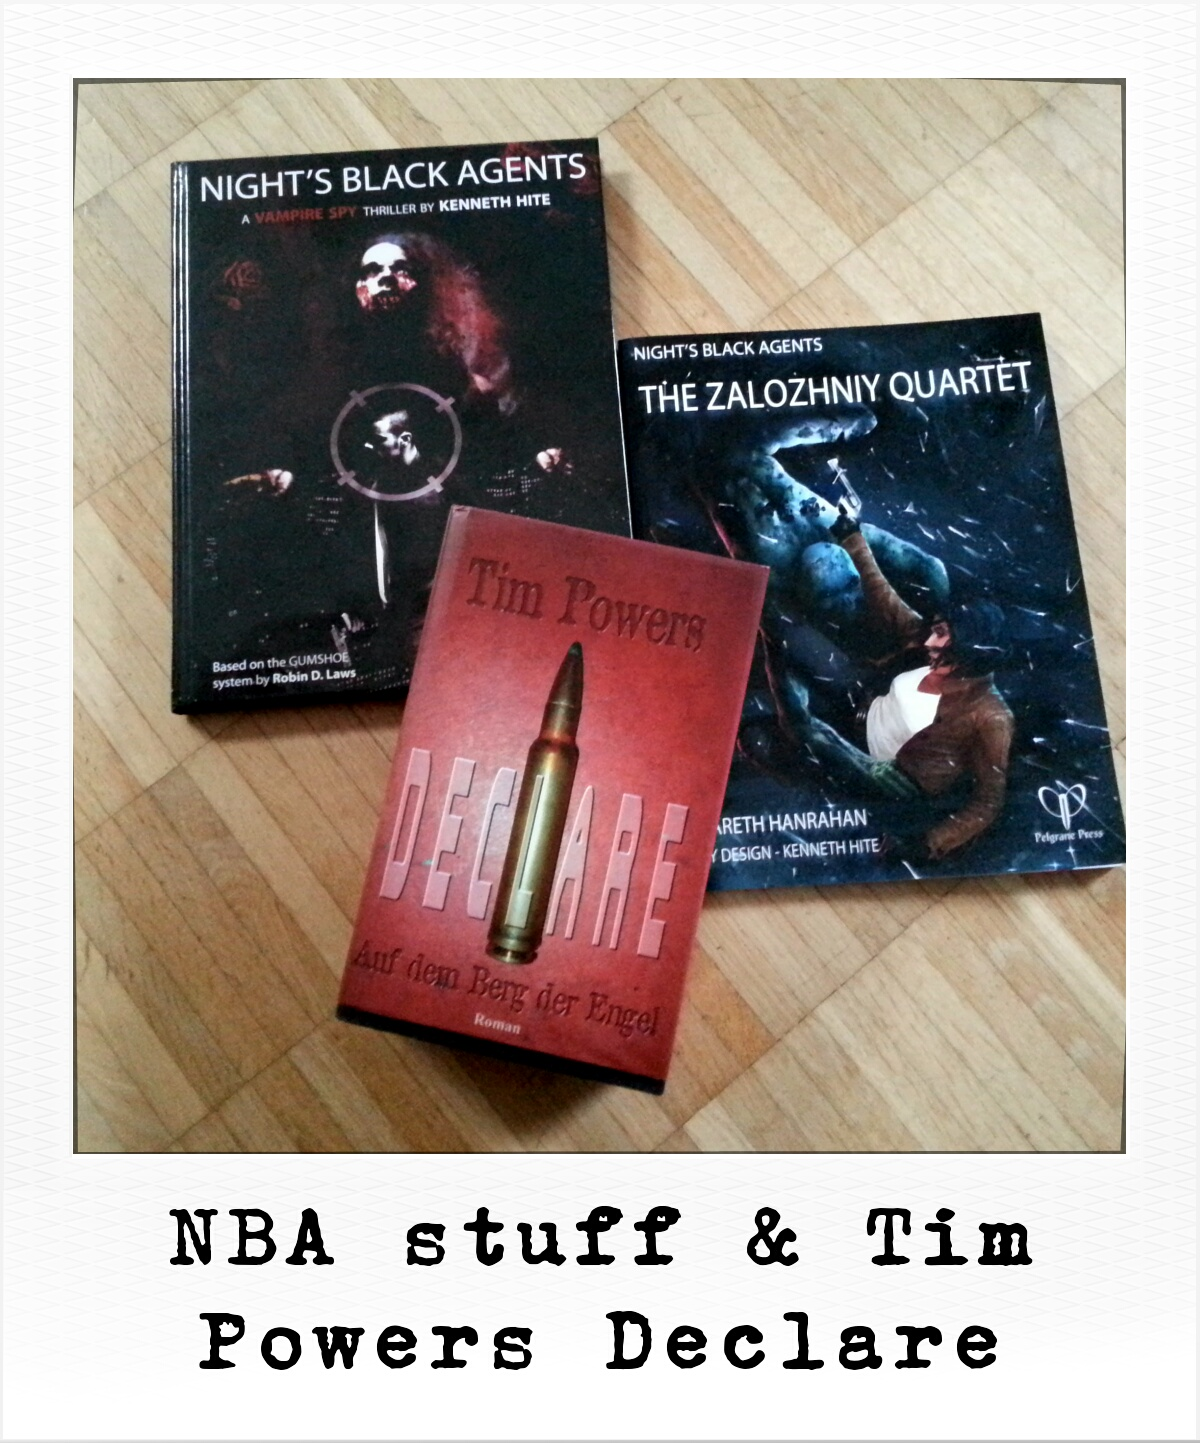 Night's Black Agents stuff & Tim Powers Declare (German Edition, Image: obskures.de)